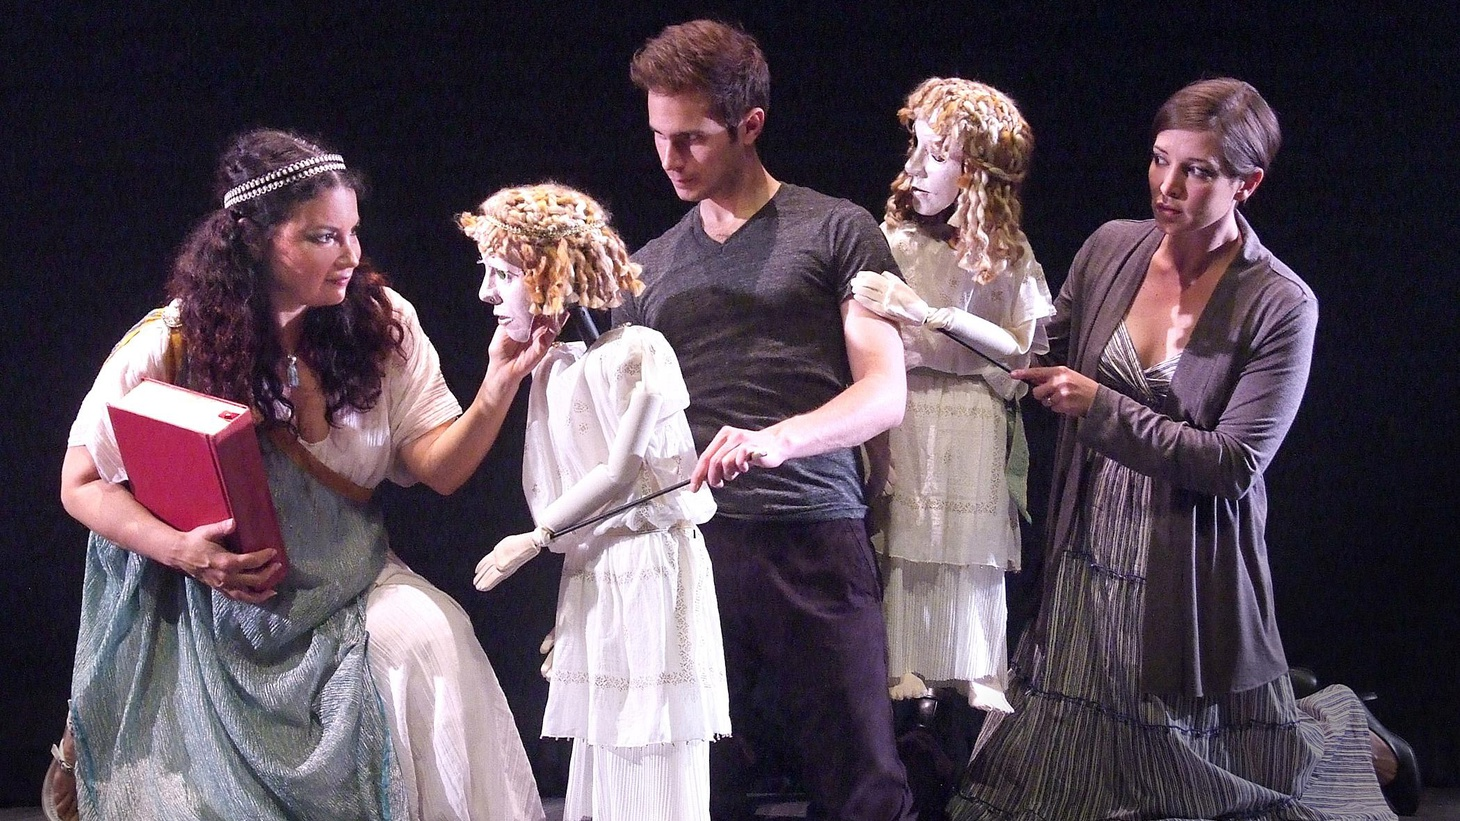 Anthony Byrnes on the production of Boston Court Theatre's production of Michael Elyanow's Medea, as told through the eyes of children...